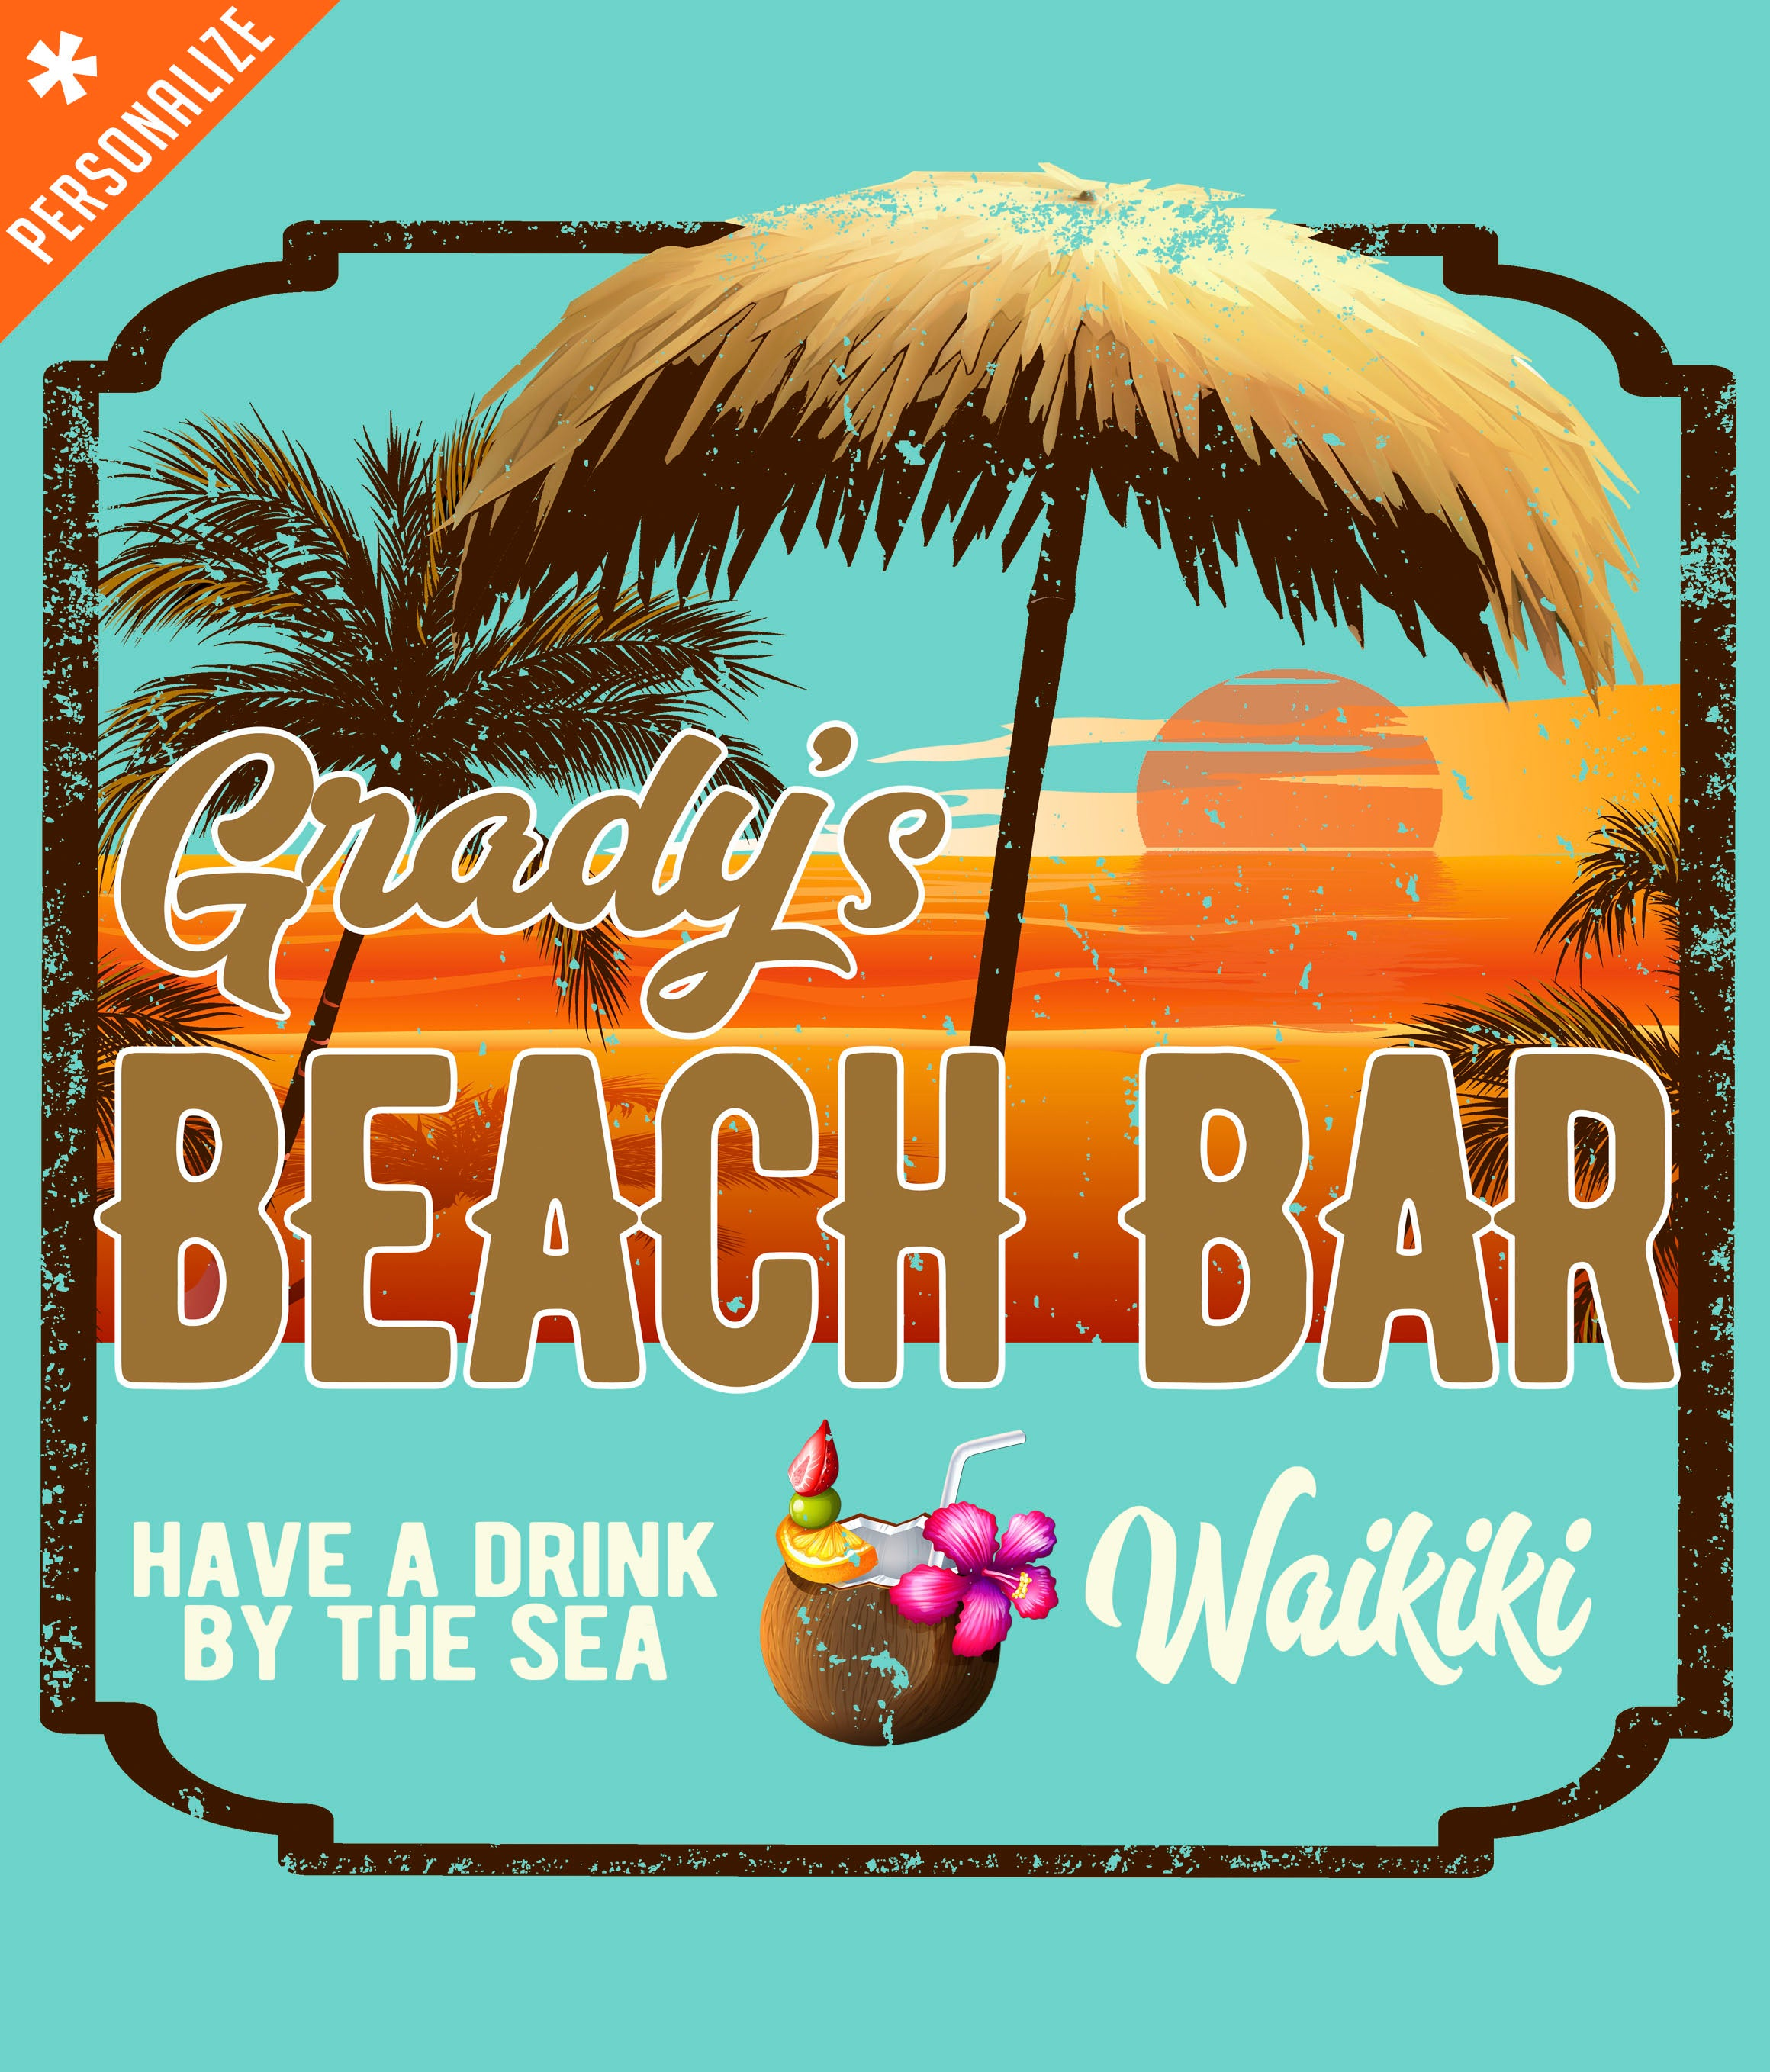 Customized Beach Bar T-shirt design closeup